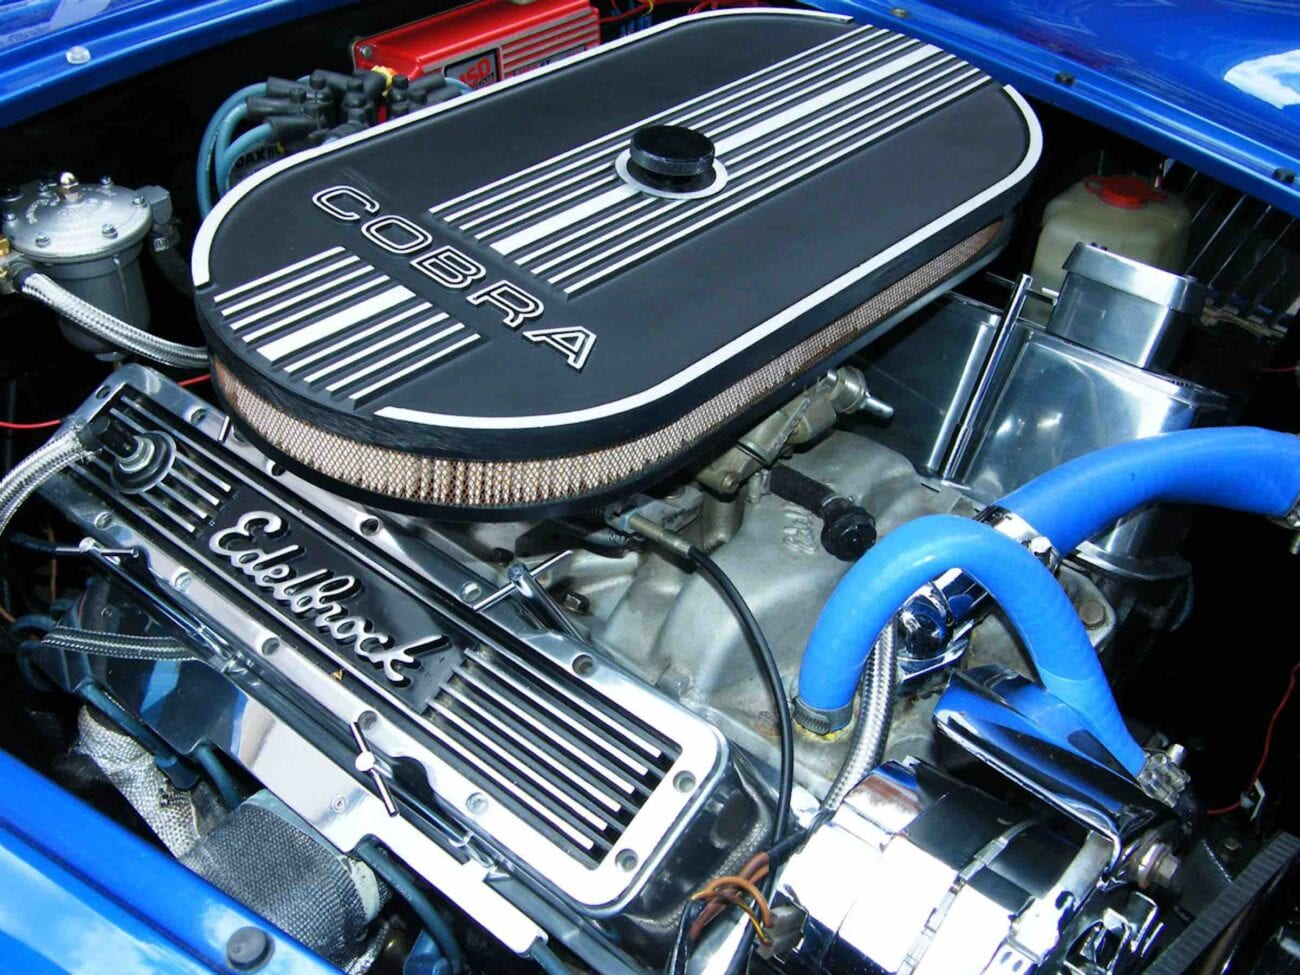 Is the engine in your vehicle or late model truck worth rebuilding? Here's what we know about rebuilding your auto engine.